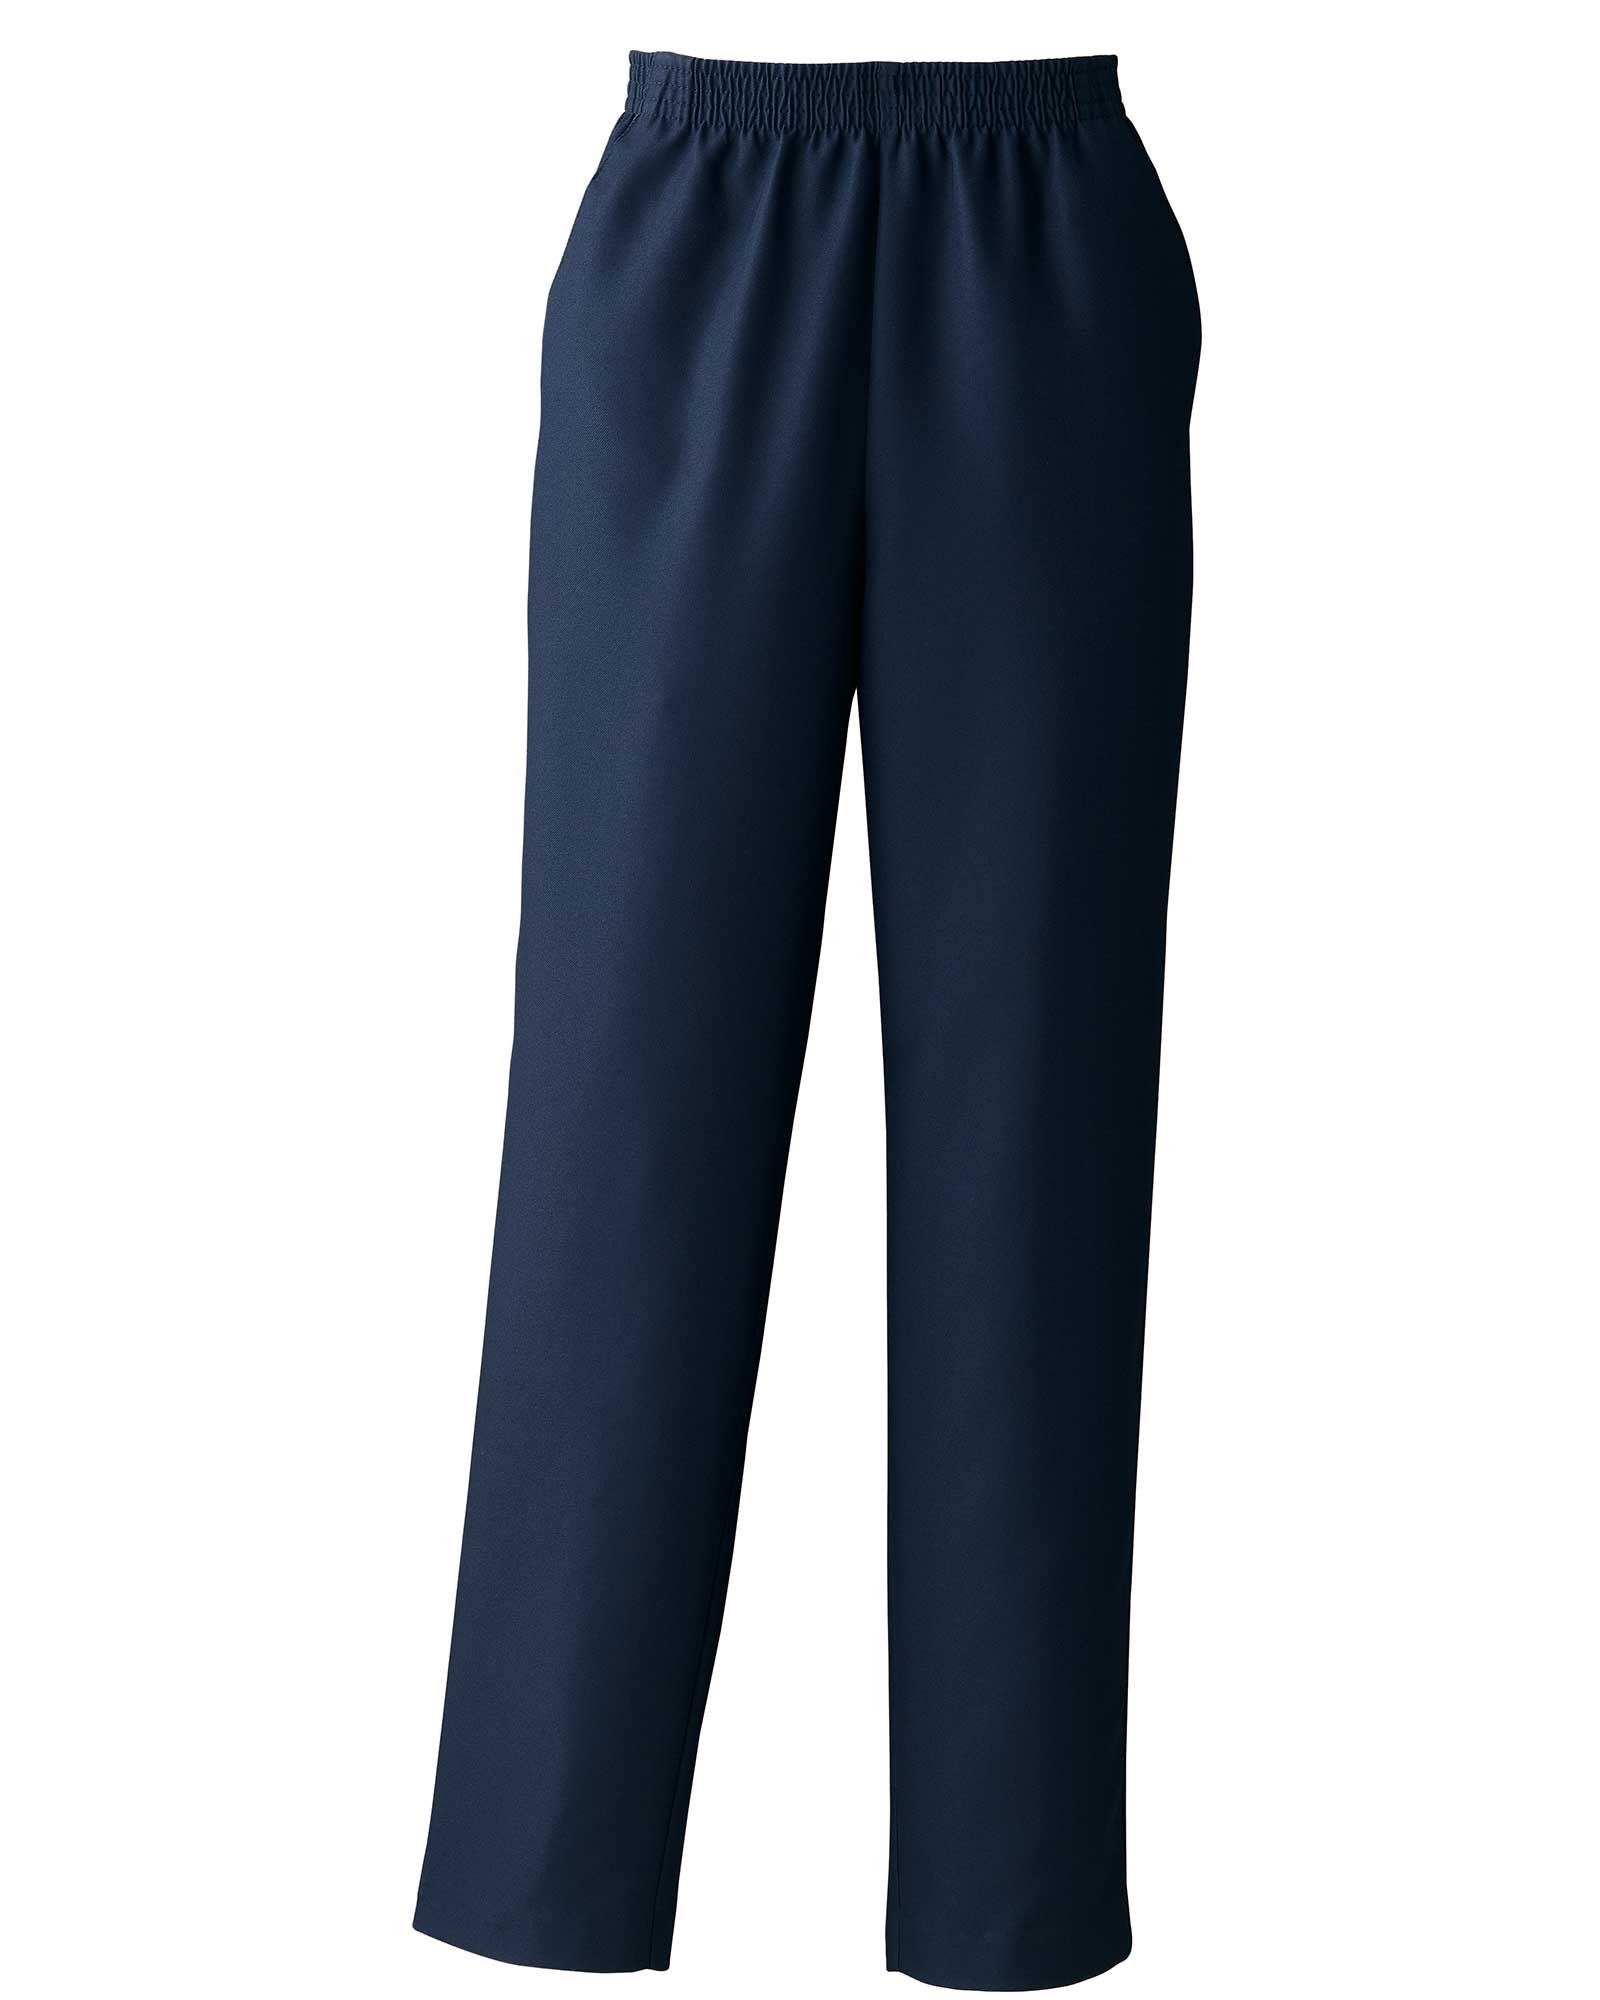 Donnkenny Elastic-Waist Gabardine Pull-On Pants, Navy, 14